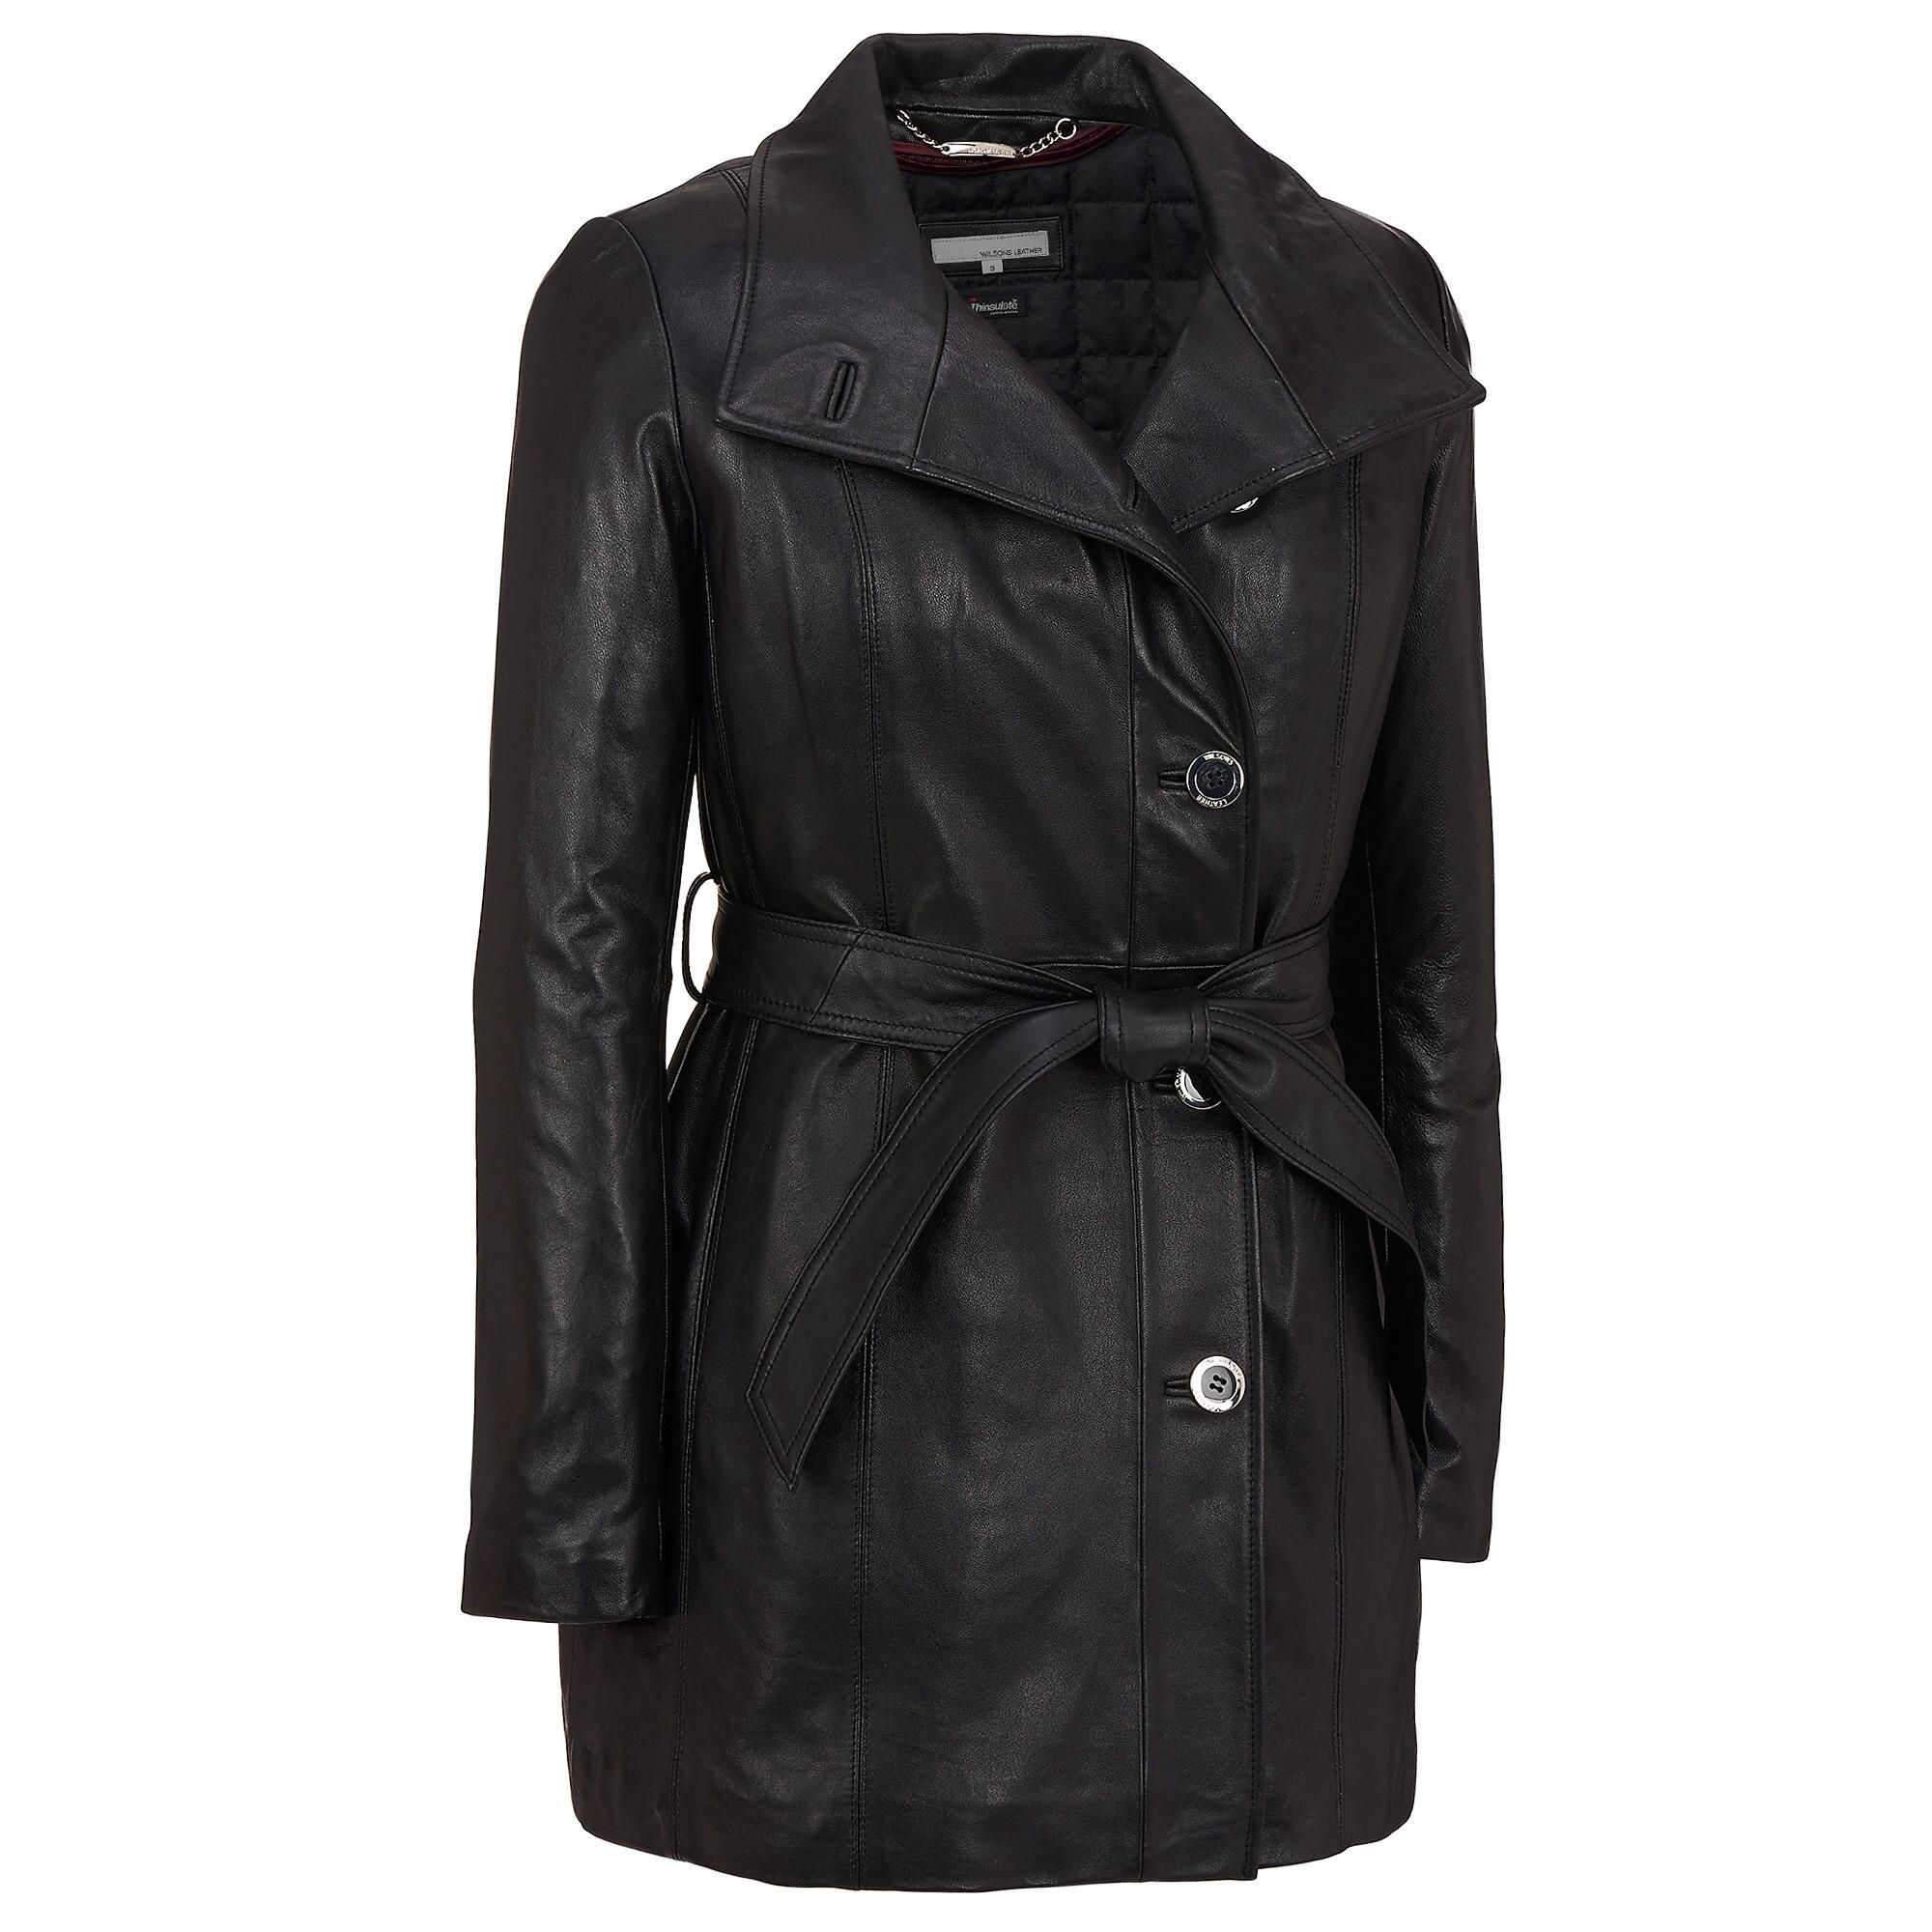 Thinsulate Lined Women's & Plus Size … Wilsons leather